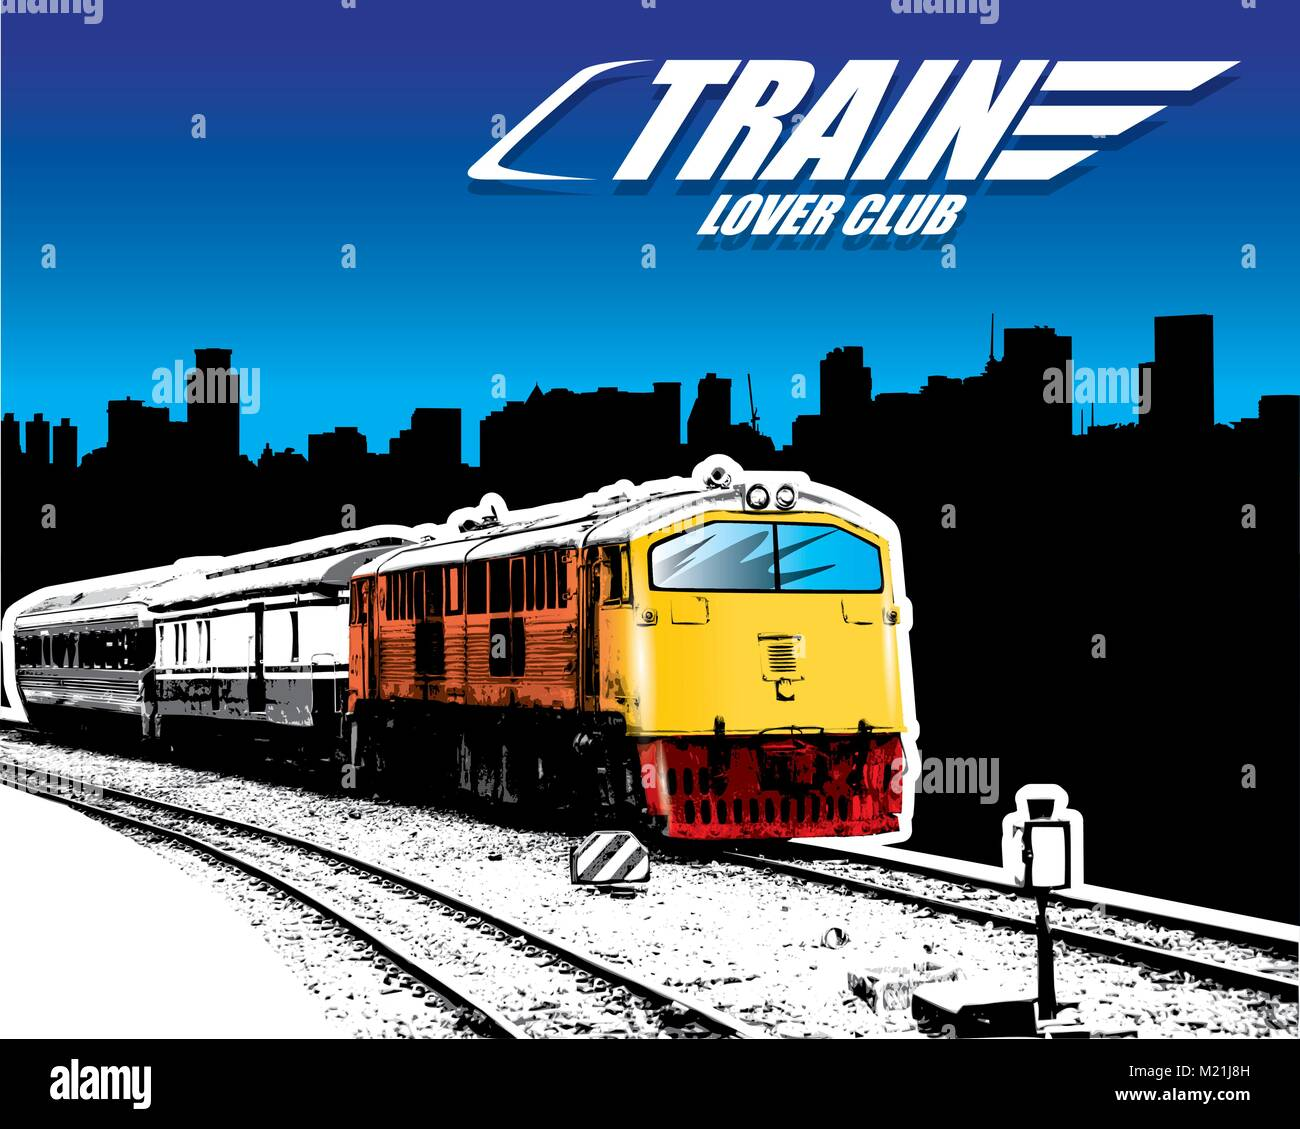 old train on a rail road in the city. Vector illustration - Stock Vector